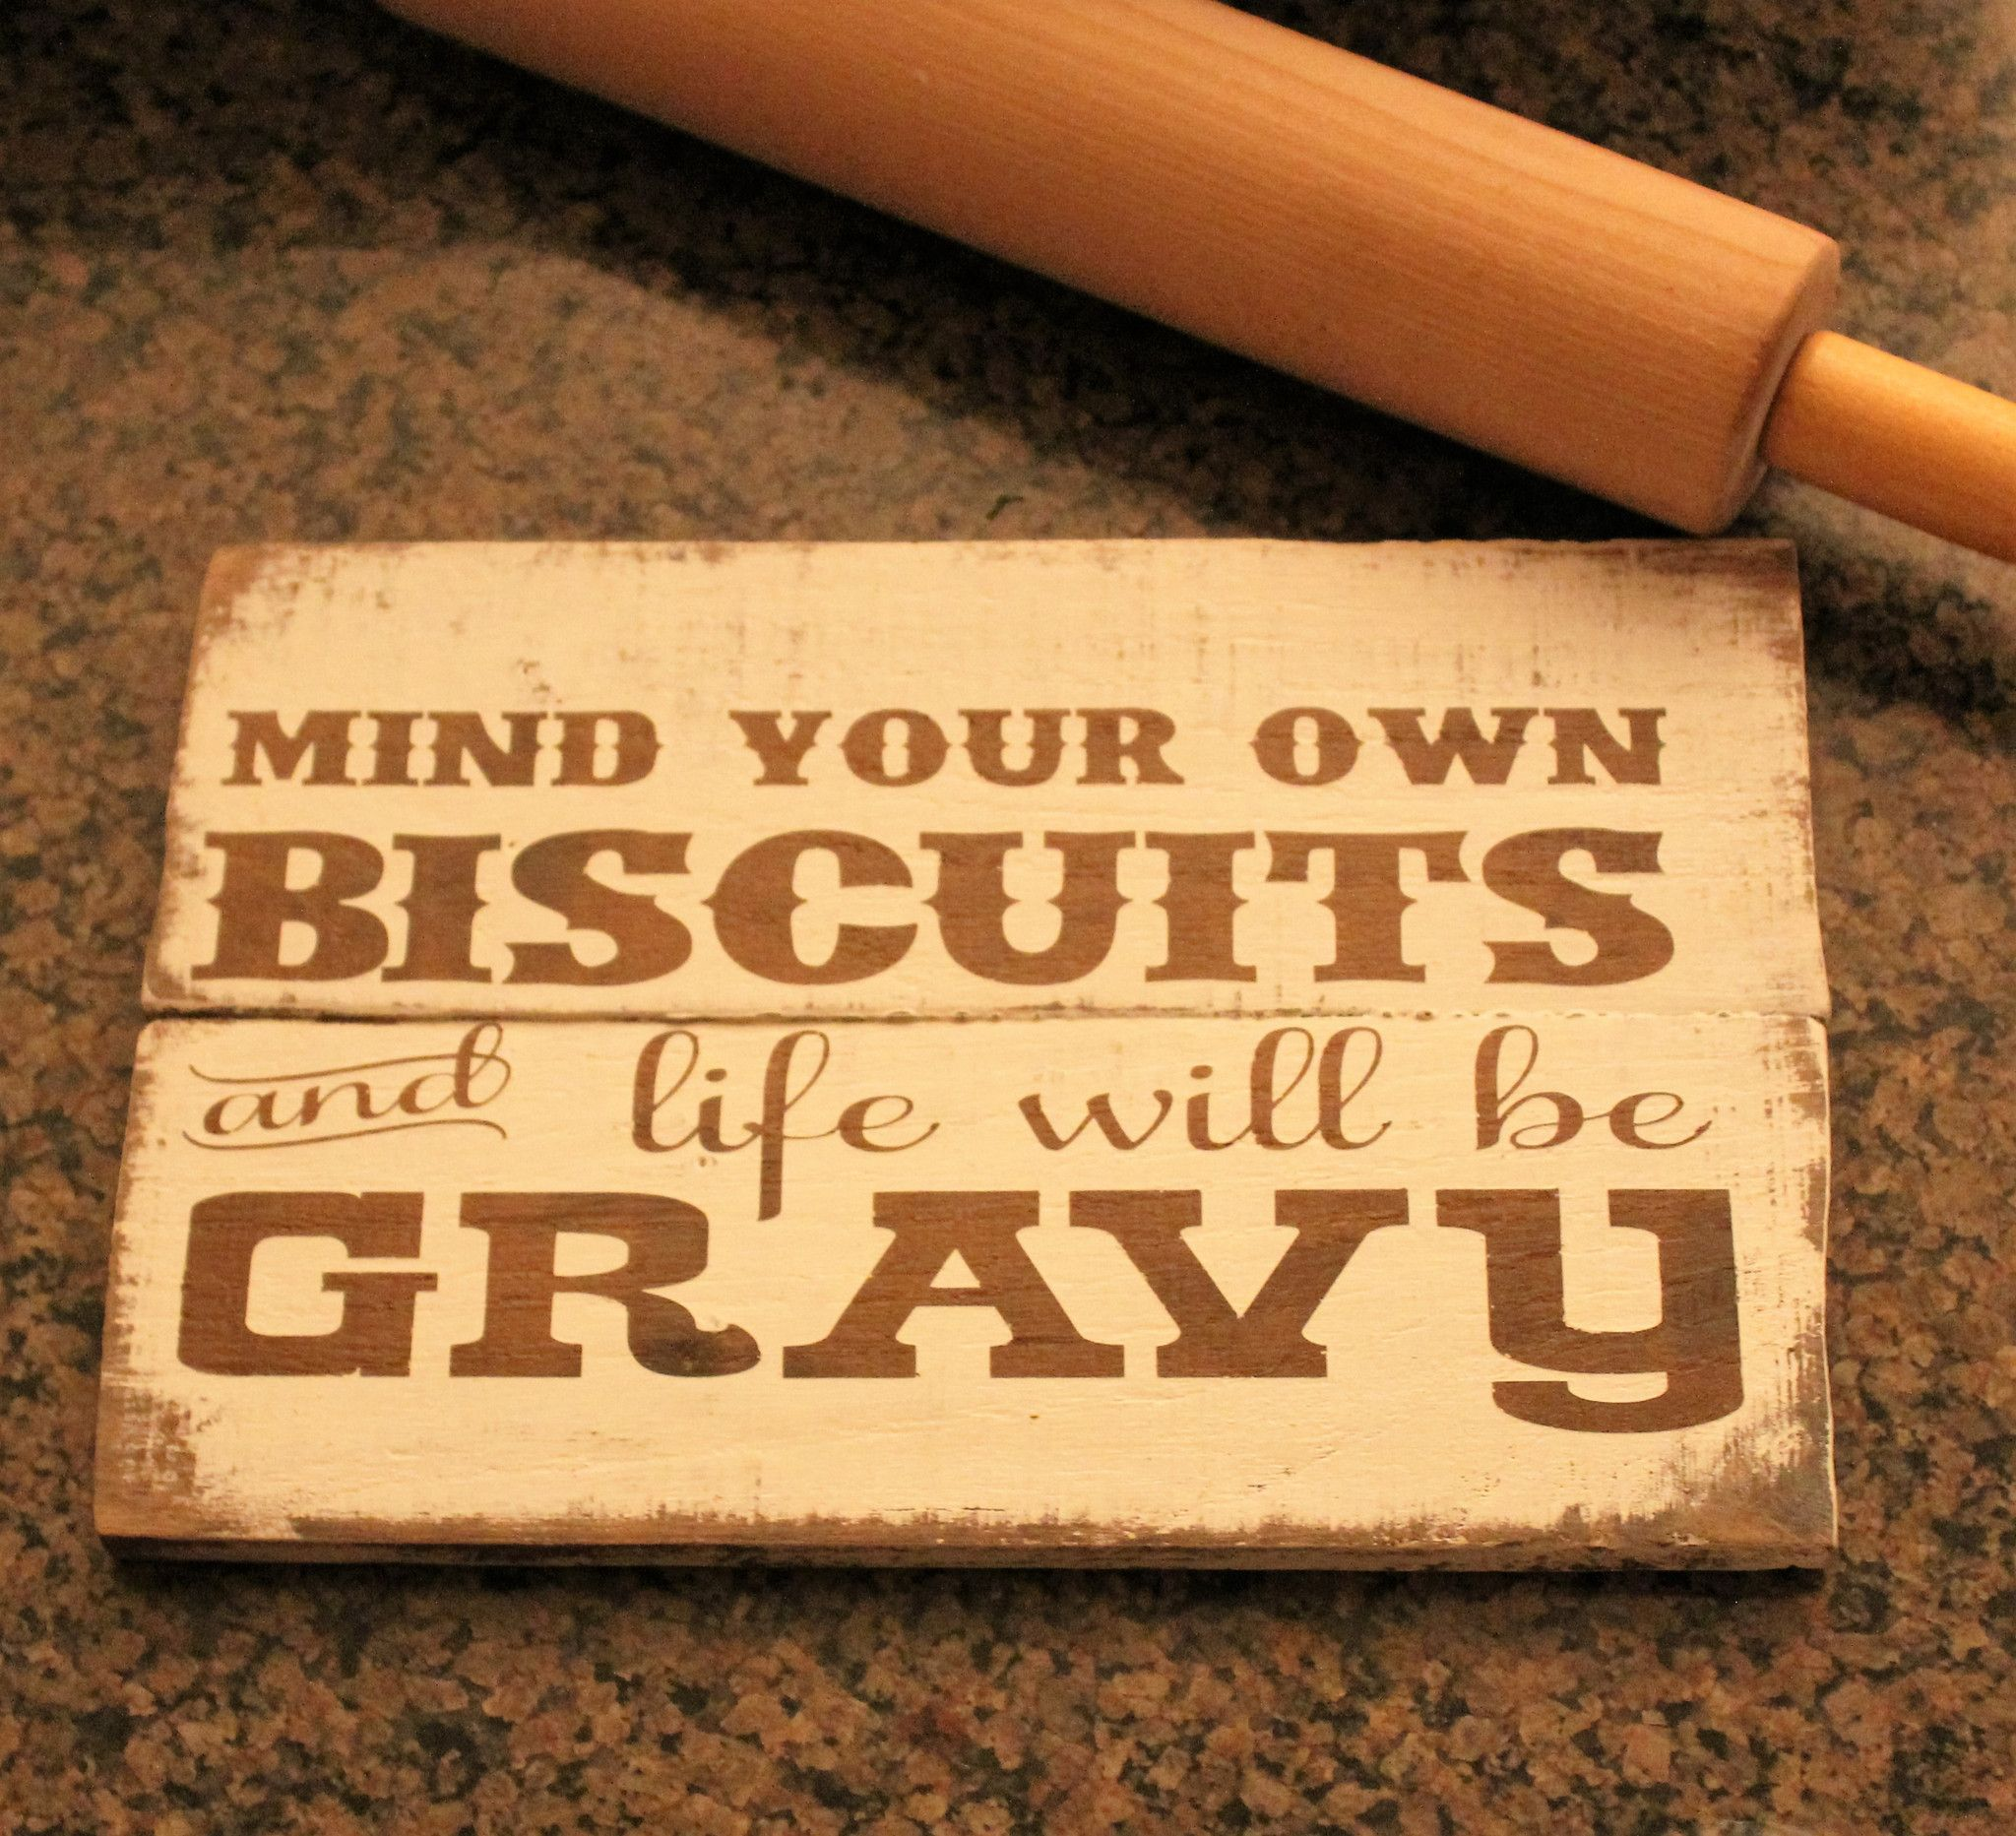 Kitchen Signs Sayings: Mind Your Own Biscuits And Life Will Be Gravy Carved